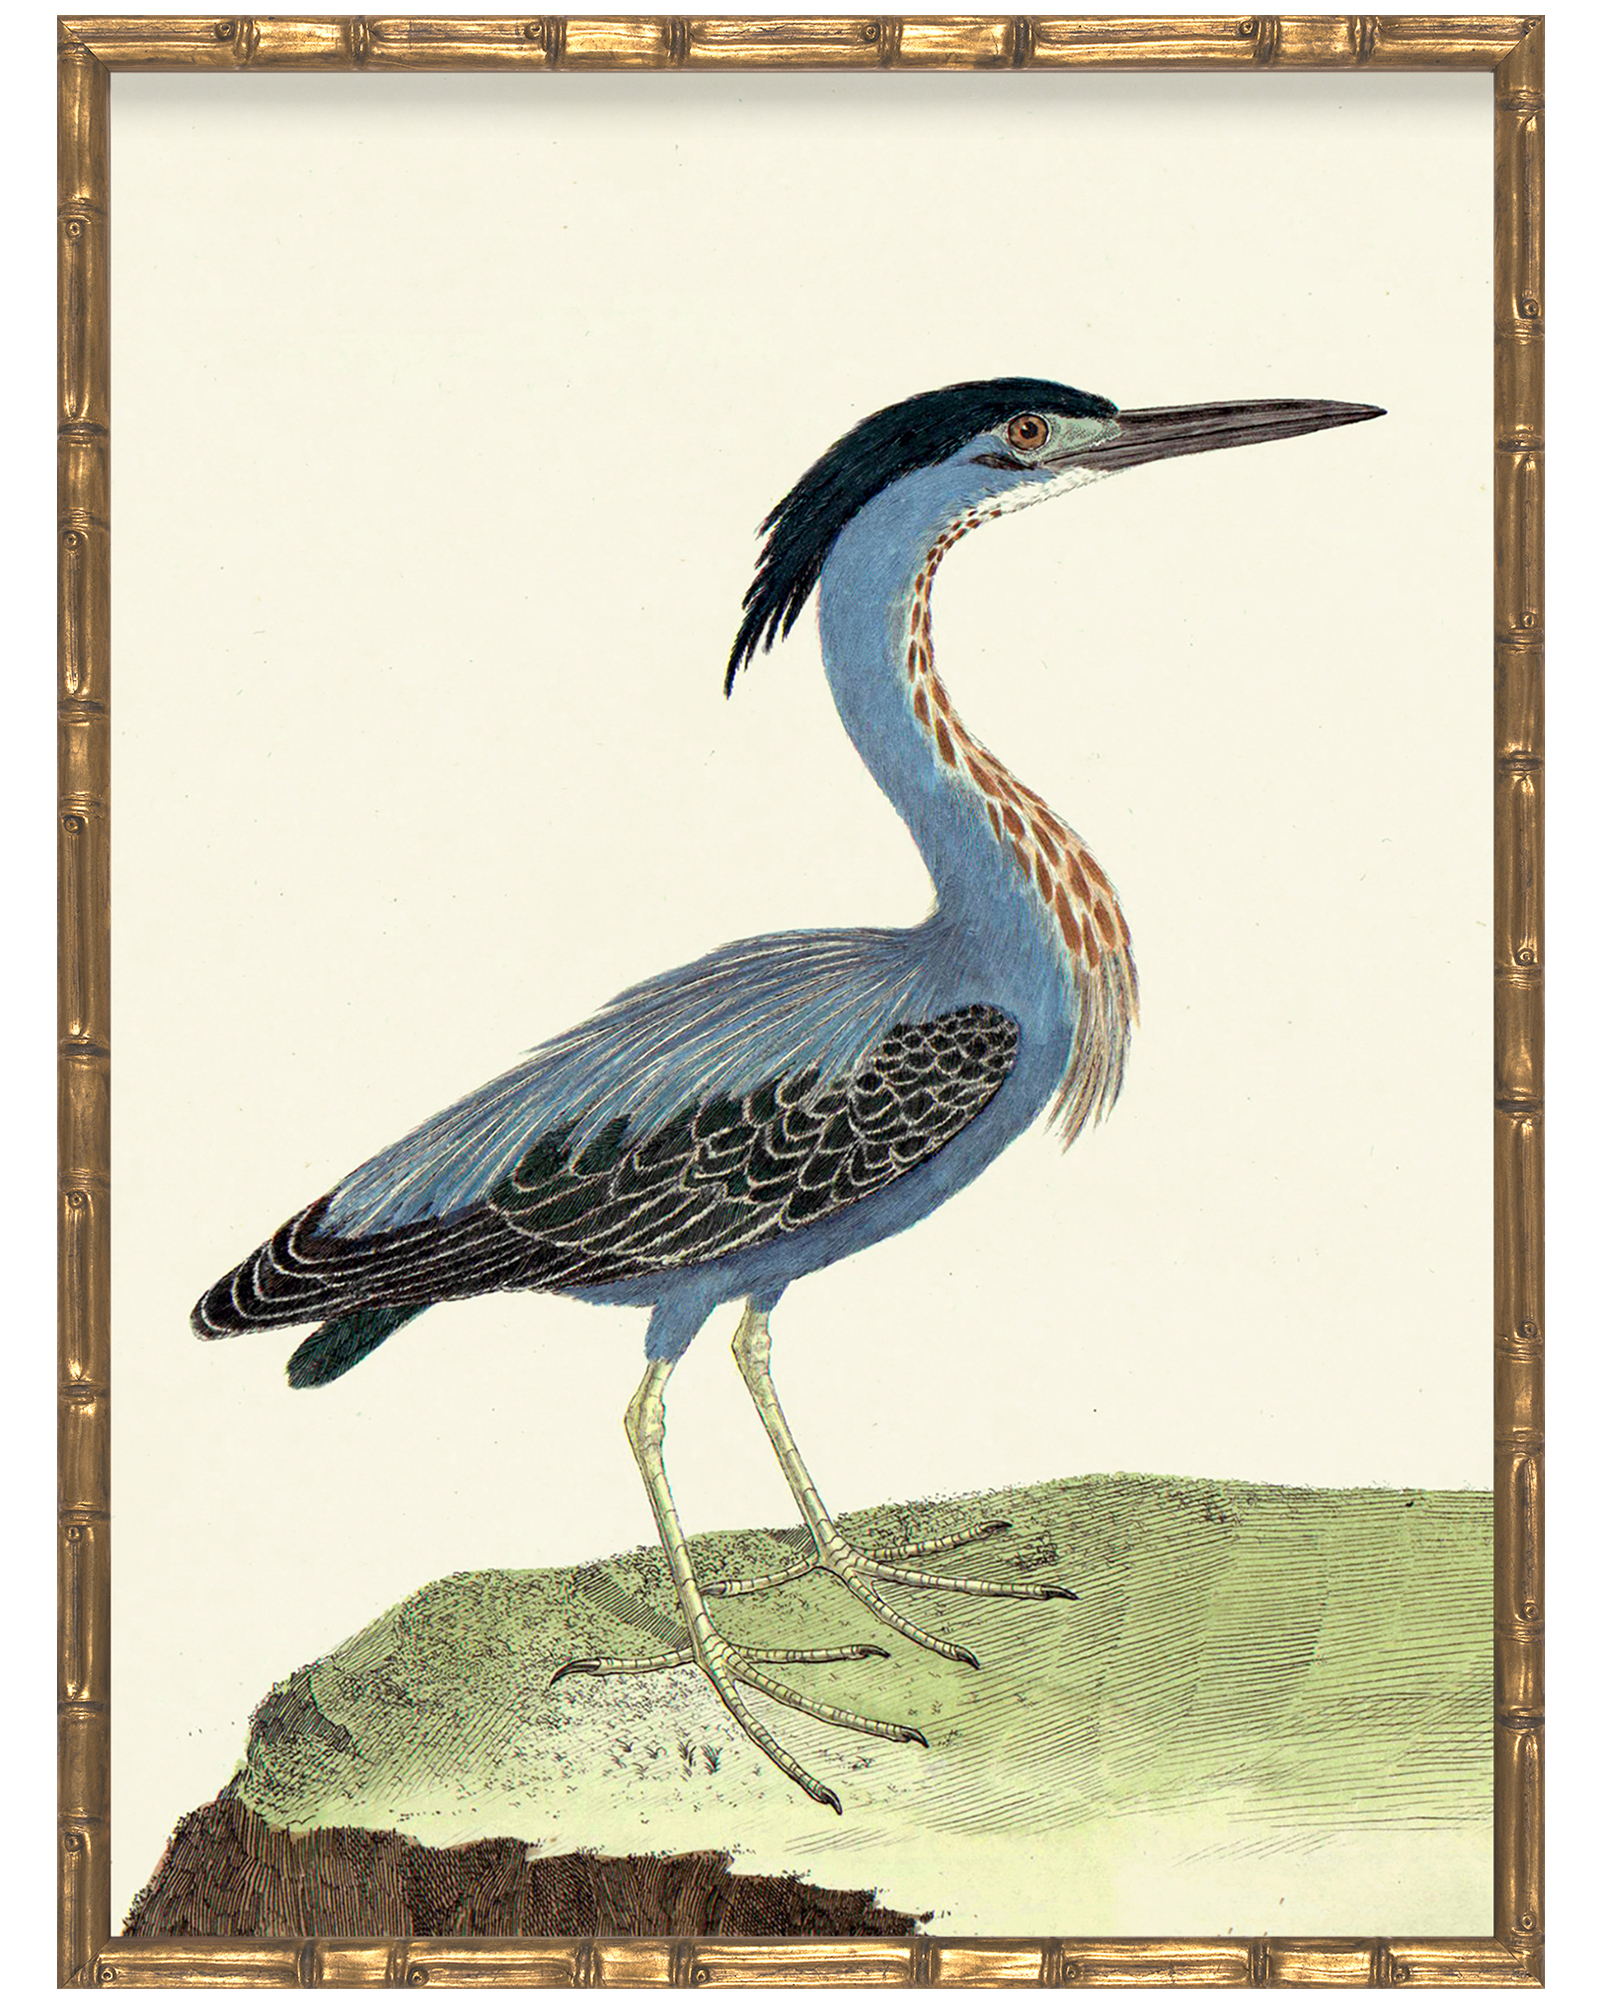 Vintage Bird VII in Bamboo Frame  by Whalebone Creek Prints,